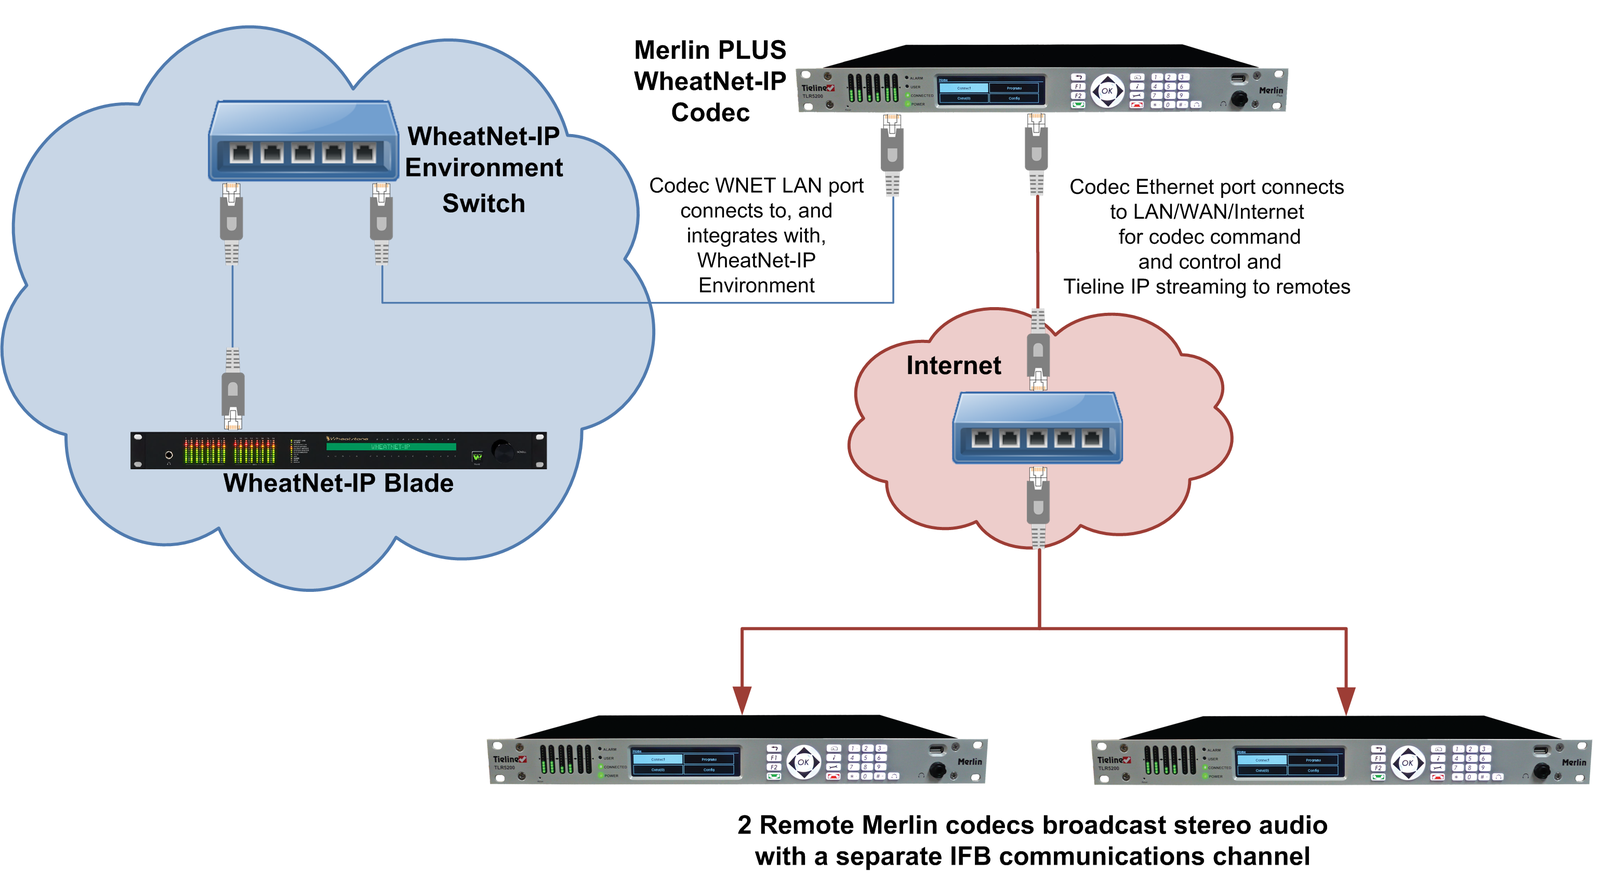 894_Merlin_PLUS_WheatNet-IP_2_x_stereo_comms_overview_20130726